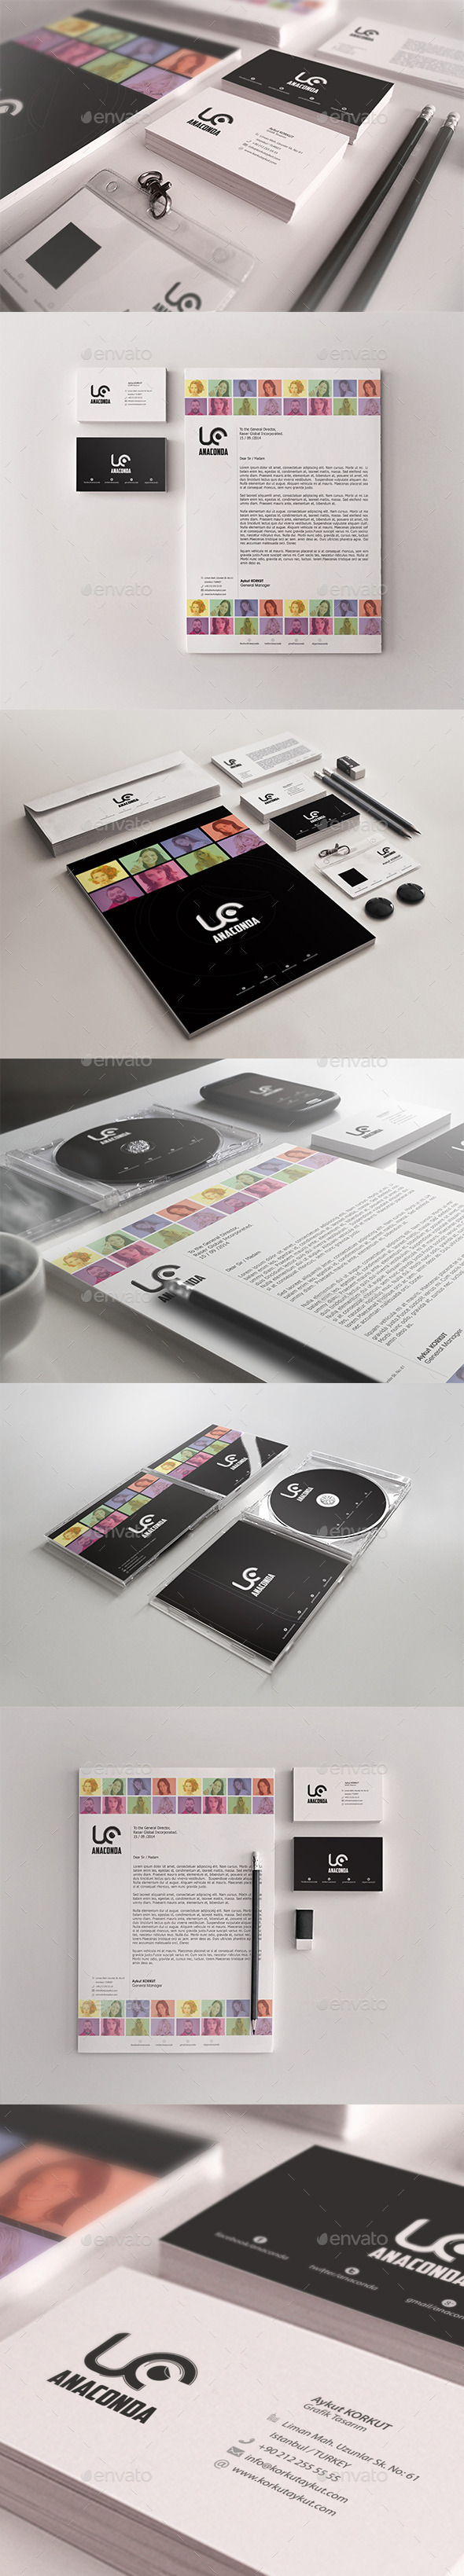 GraphicRiver Anaconda Corporate Identity Package 9186519